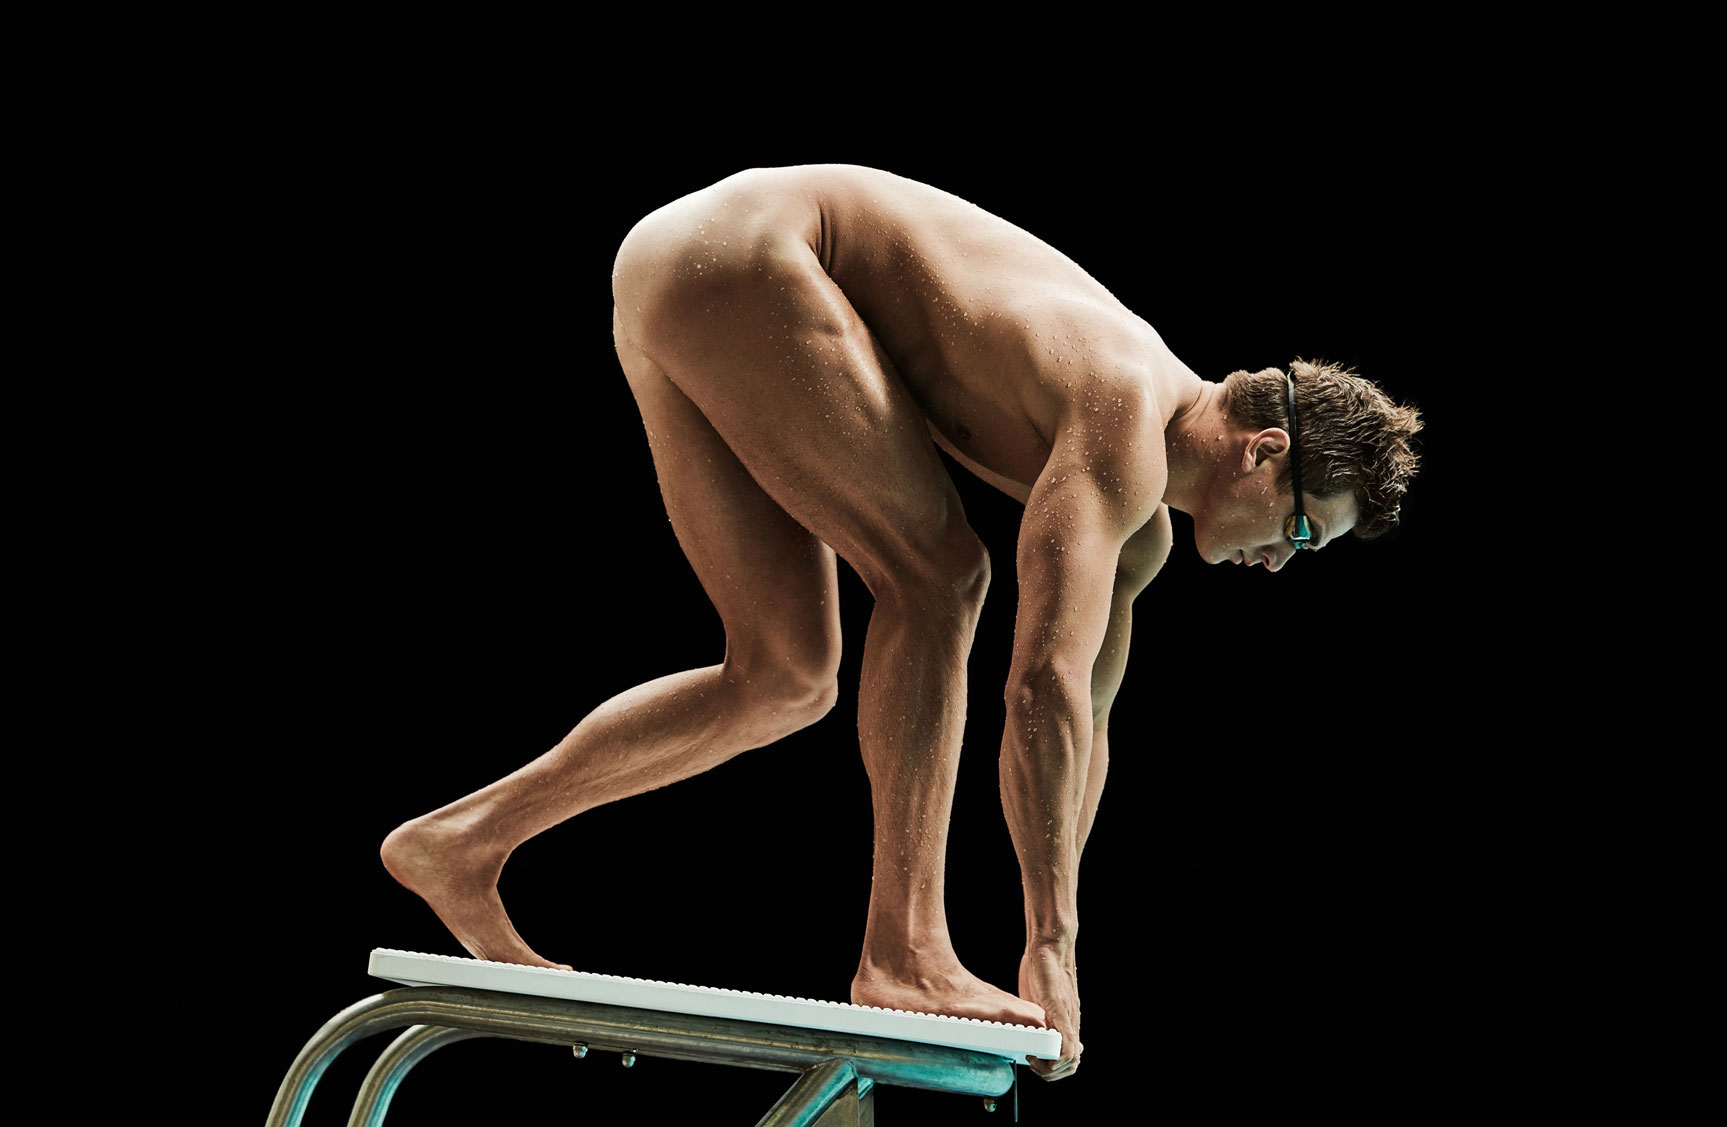 ESPN Magazine The Body Issue 2016 - Nathan Adrian / Натан Эдриан - Культ тела журнала ESPN